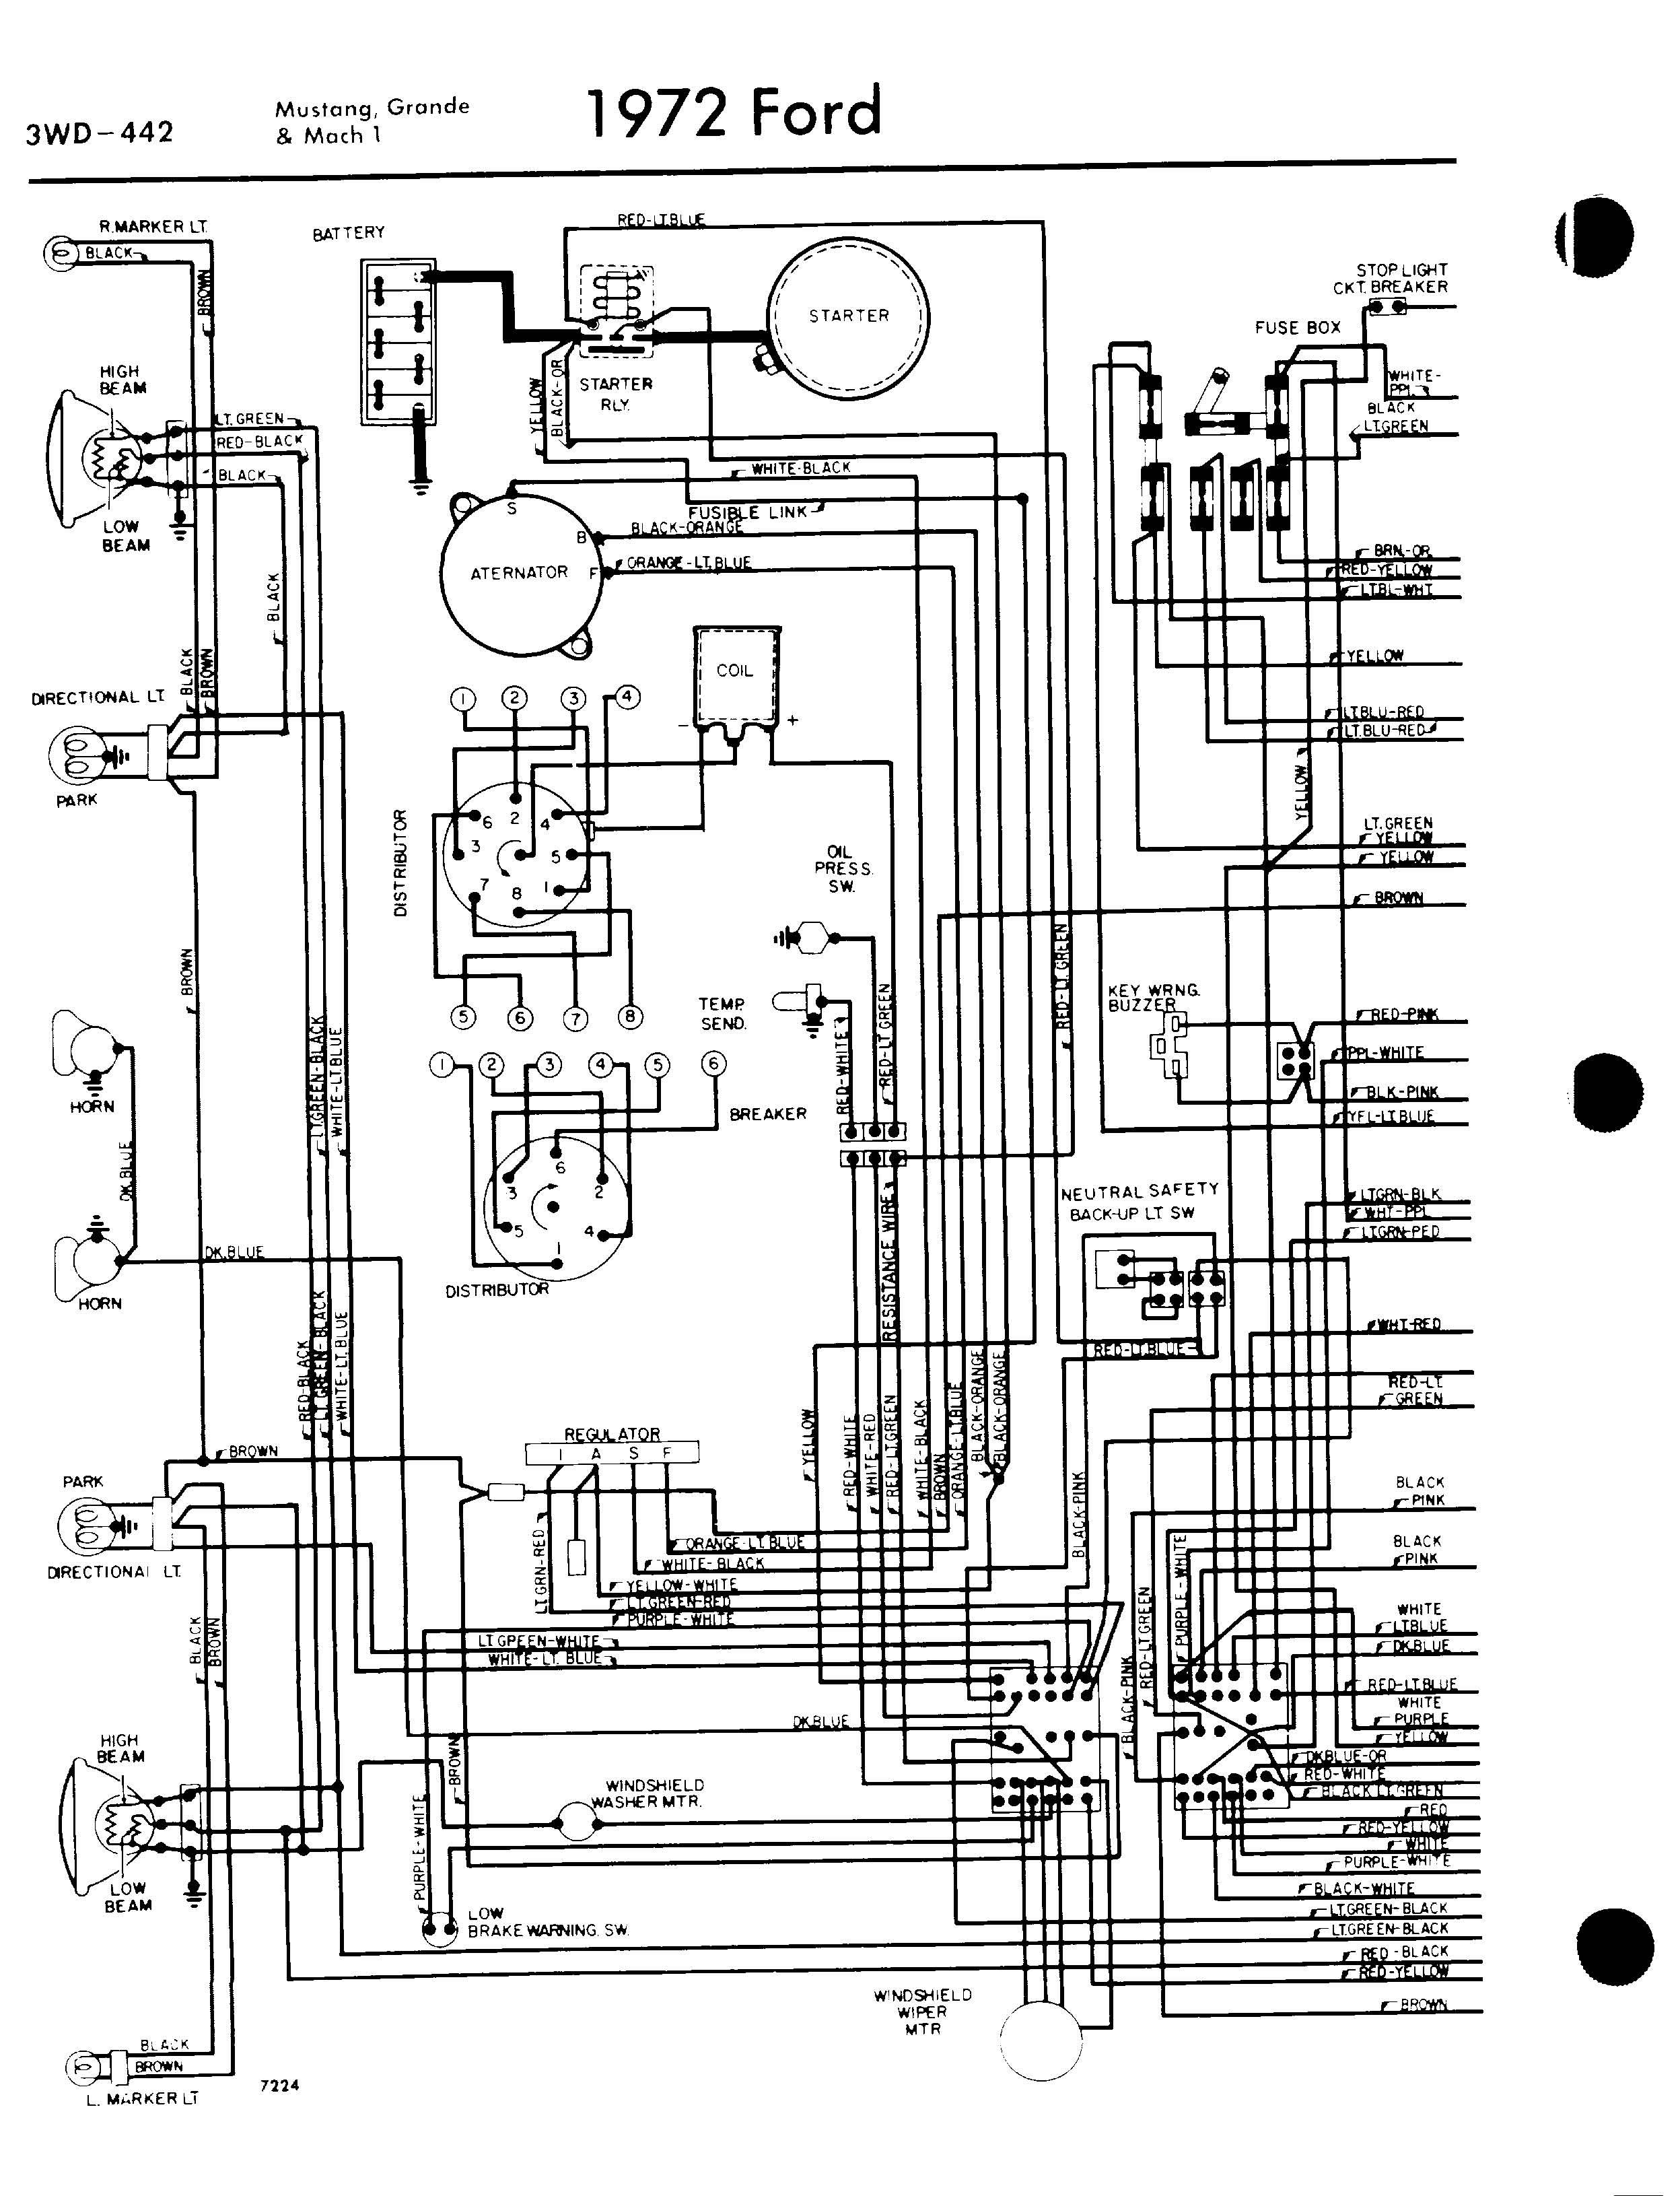 ford torino ignition wiring diagrams wiring diagram data today1970 ford torino ignition wiring diagram wiring diagram mega ford torino ignition wiring diagrams